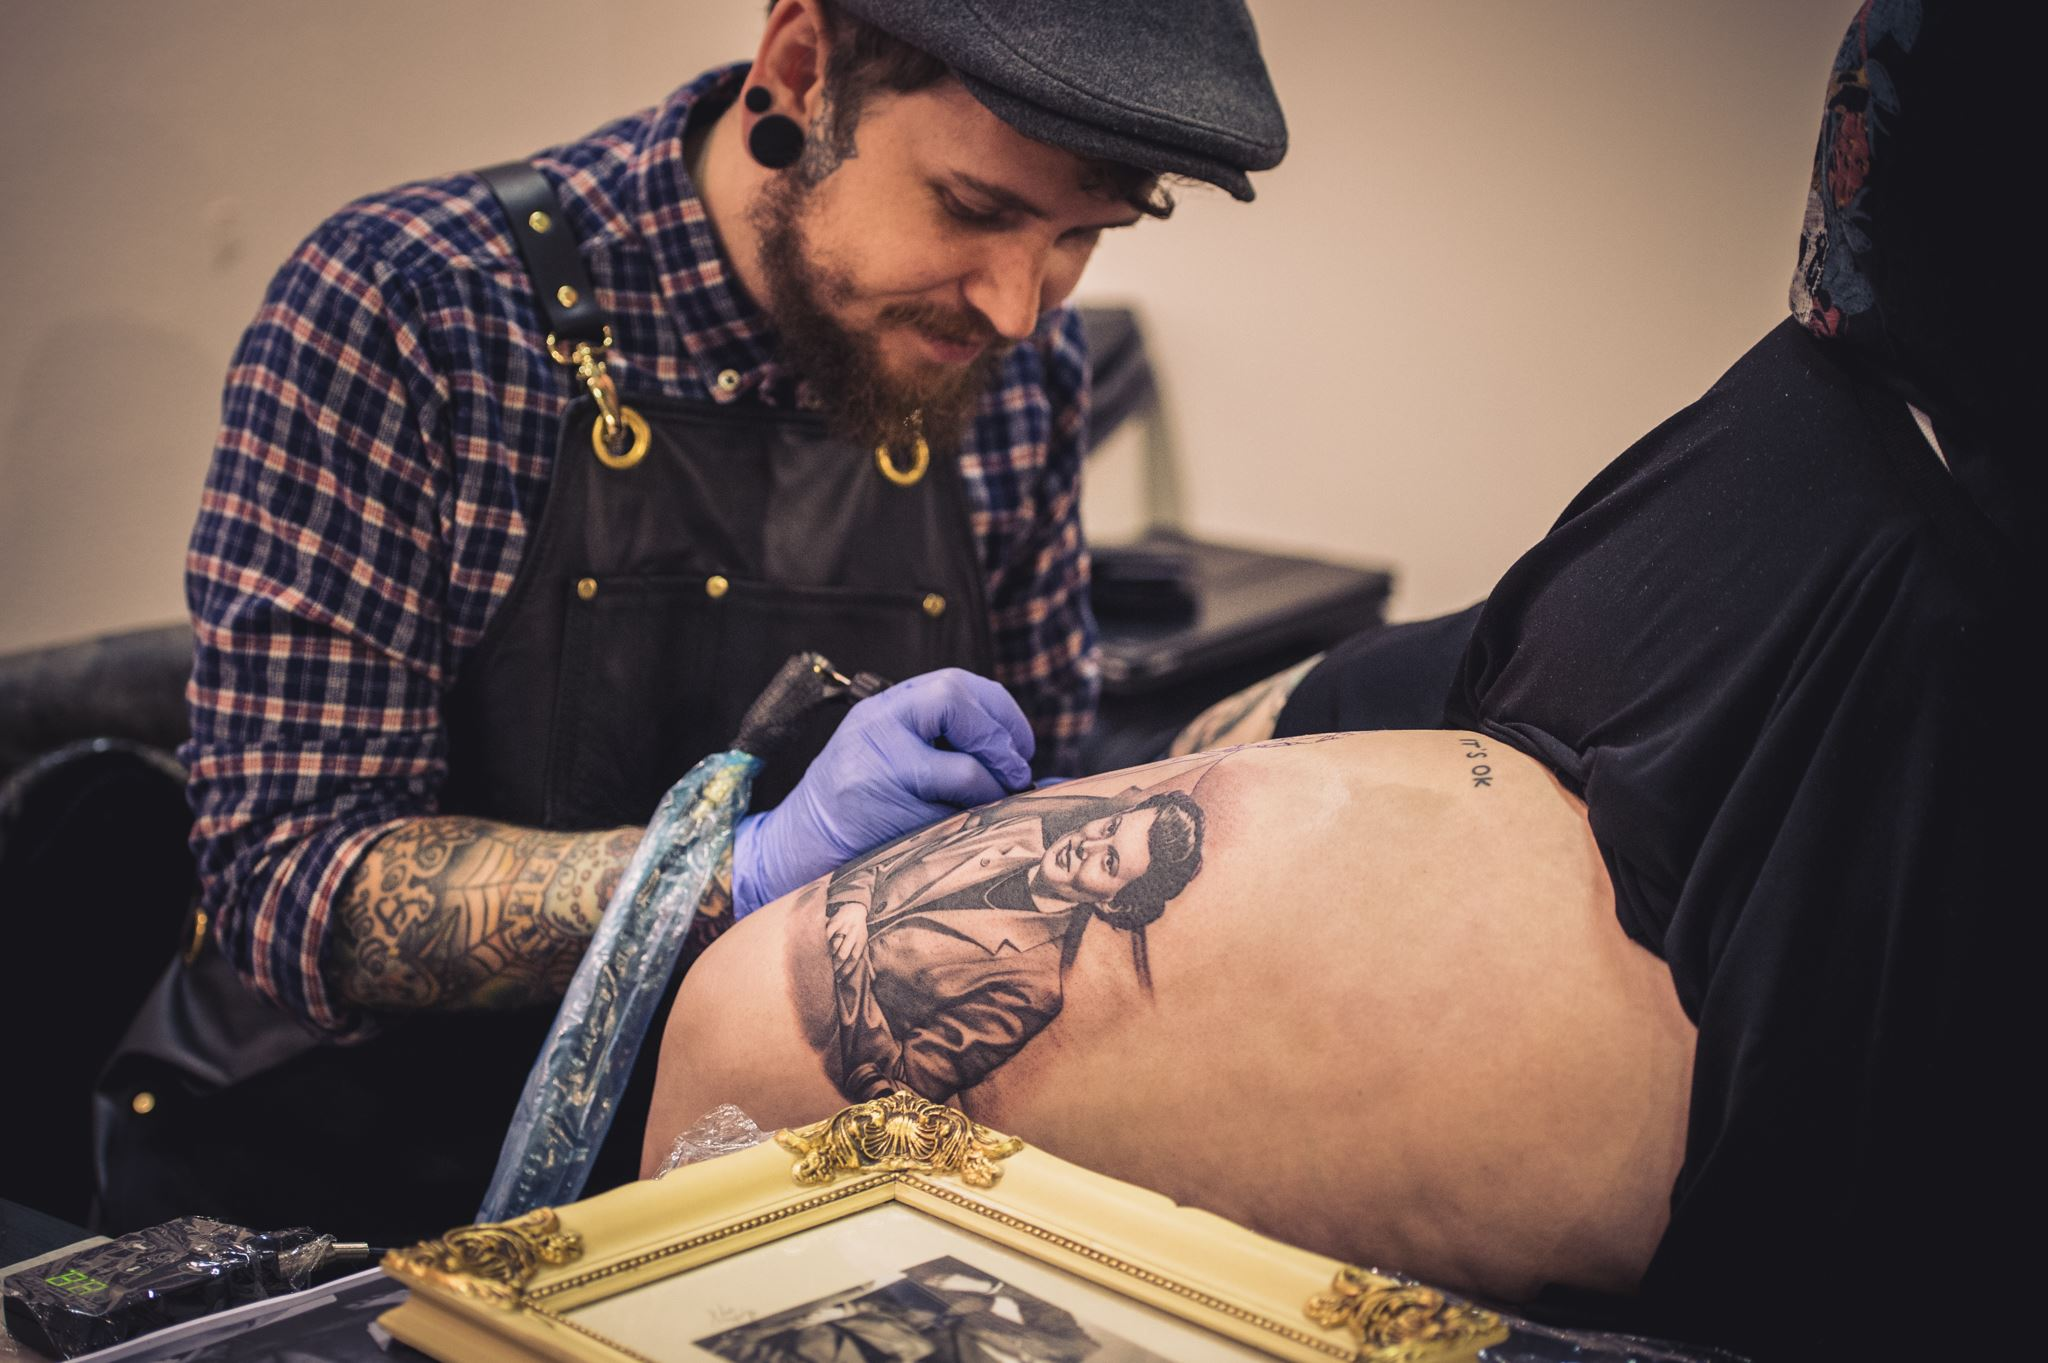 © Anne o Sune ©SEIZE Media0110, Ume Tattoo Fest